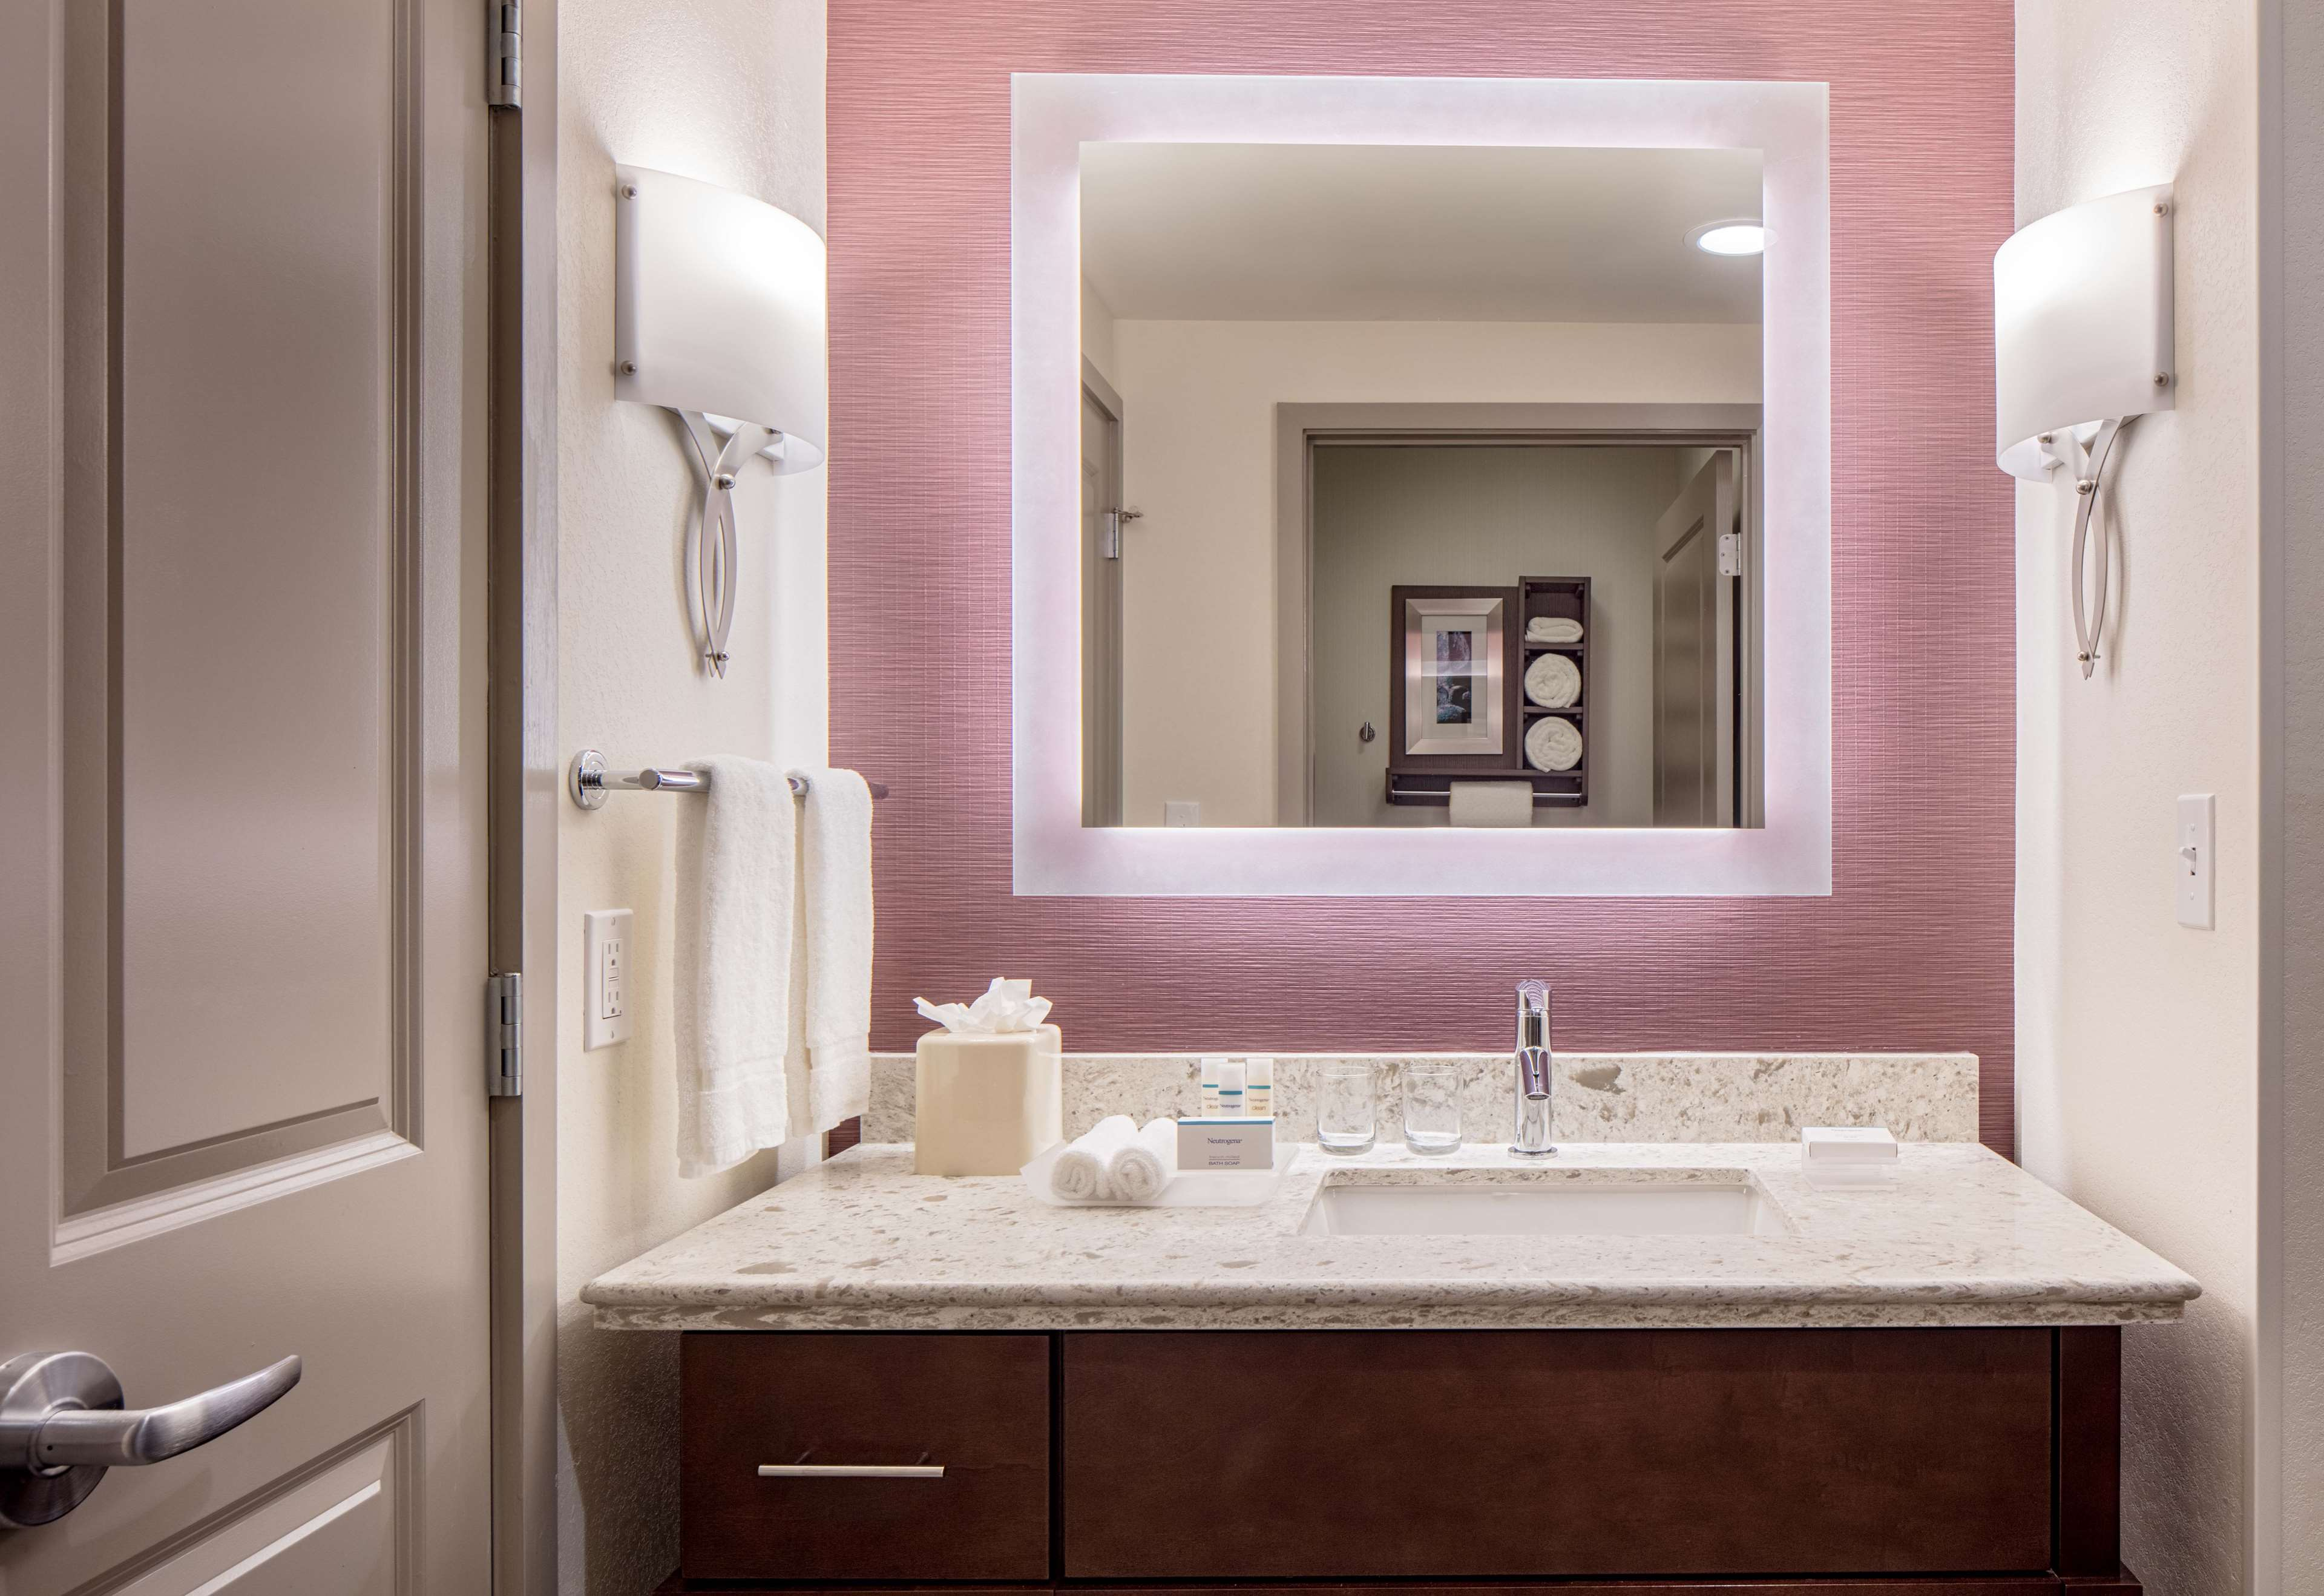 Homewood Suites by Hilton New Orleans French Quarter image 46